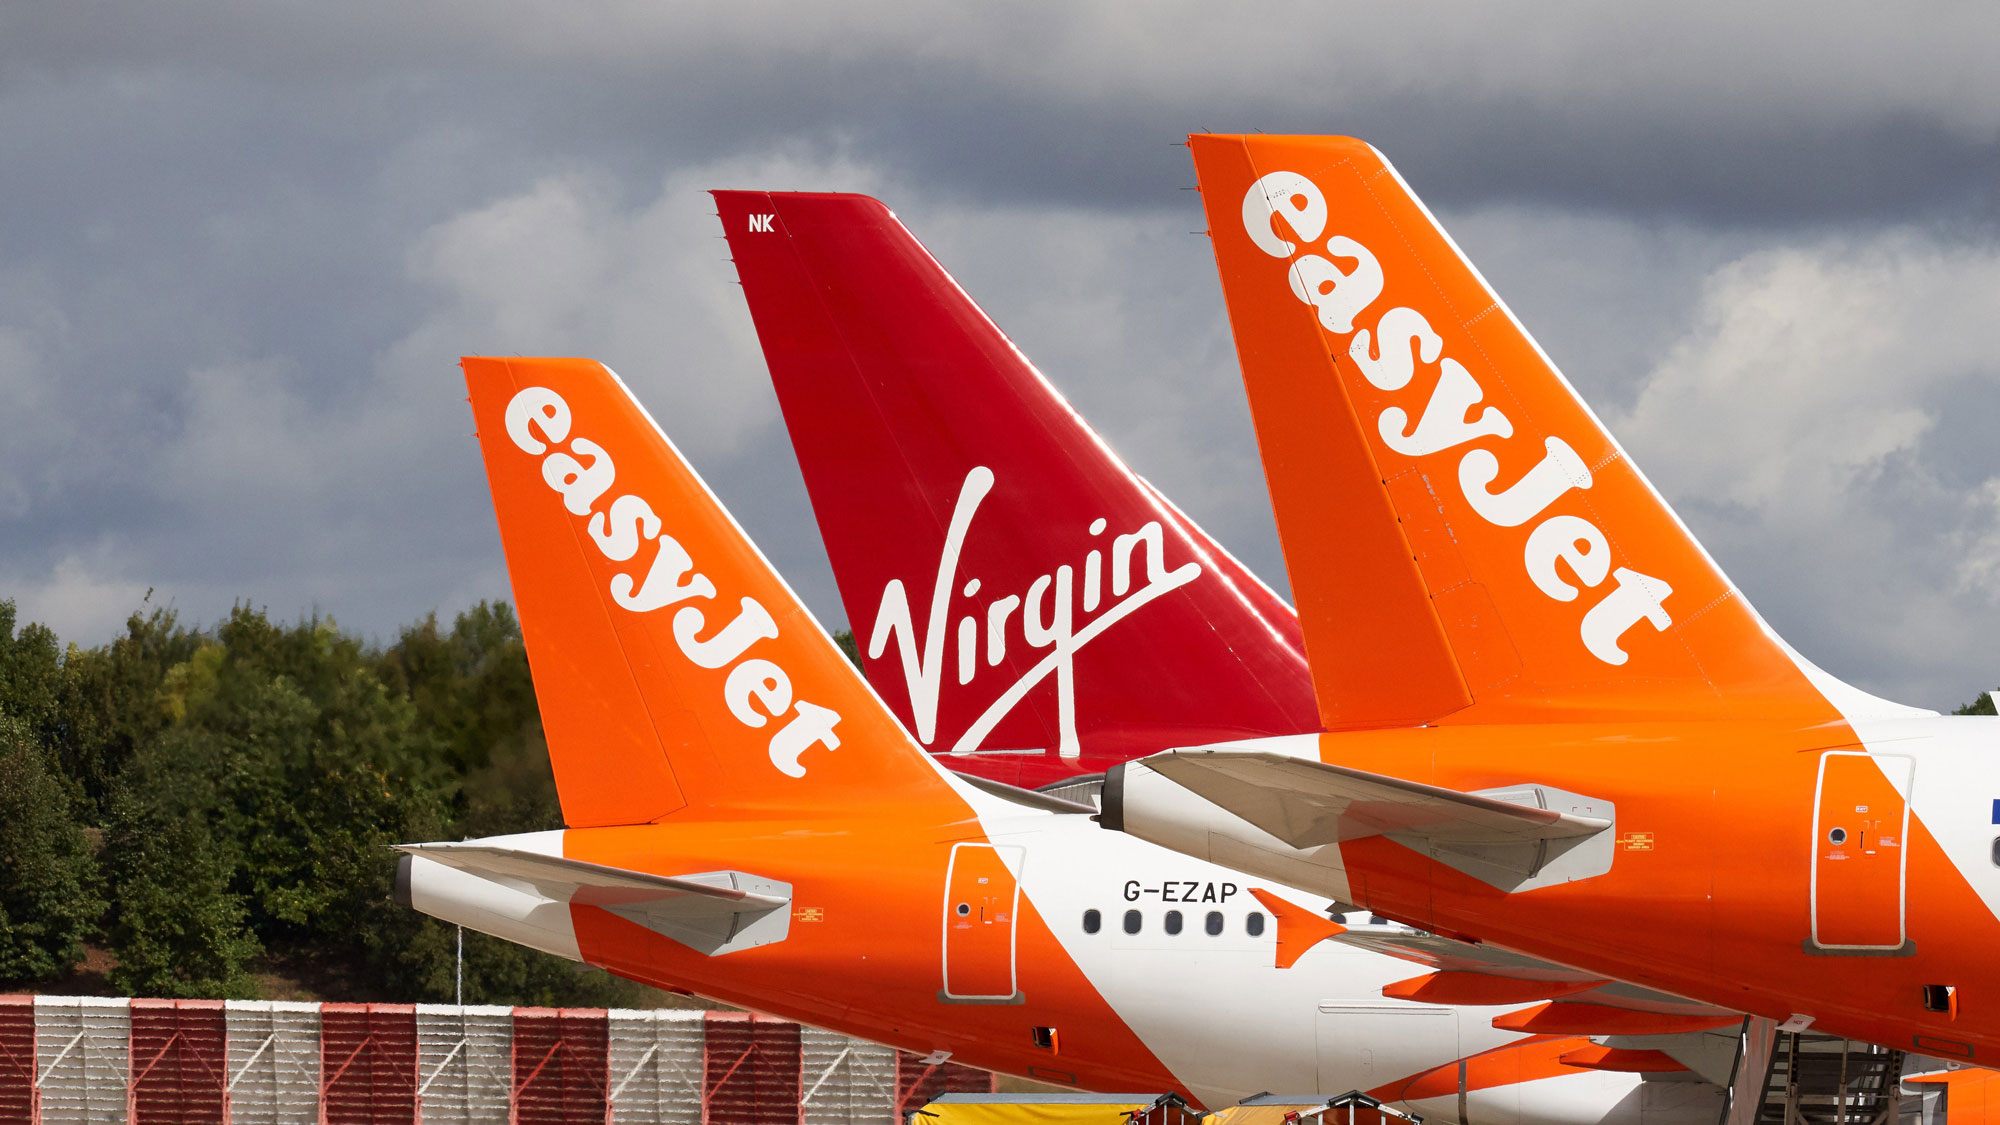 easyJet and Virgin Atlantic have written to 9000 and 4000 employees respectively to join the NHS workforce amid the coronavirus pandemic.